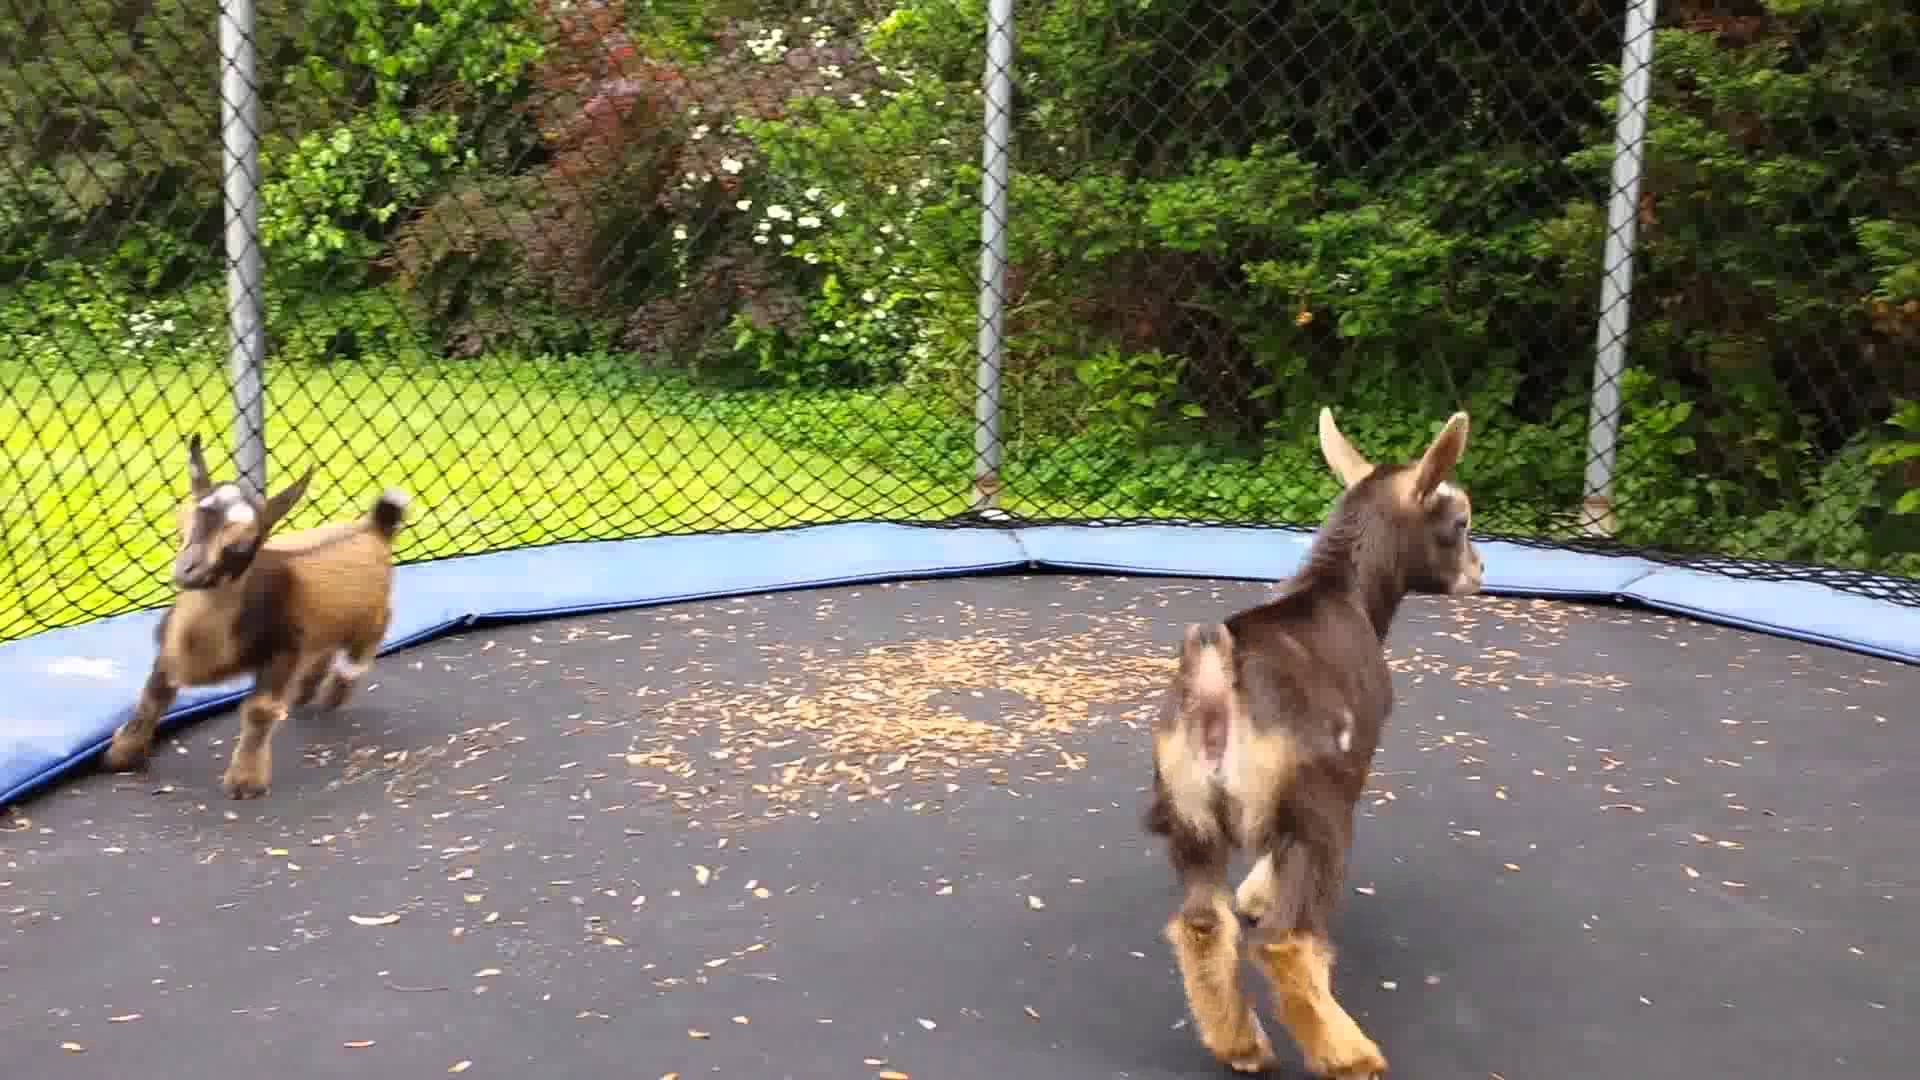 three tiny baby goats adorably jump around together on a backyard